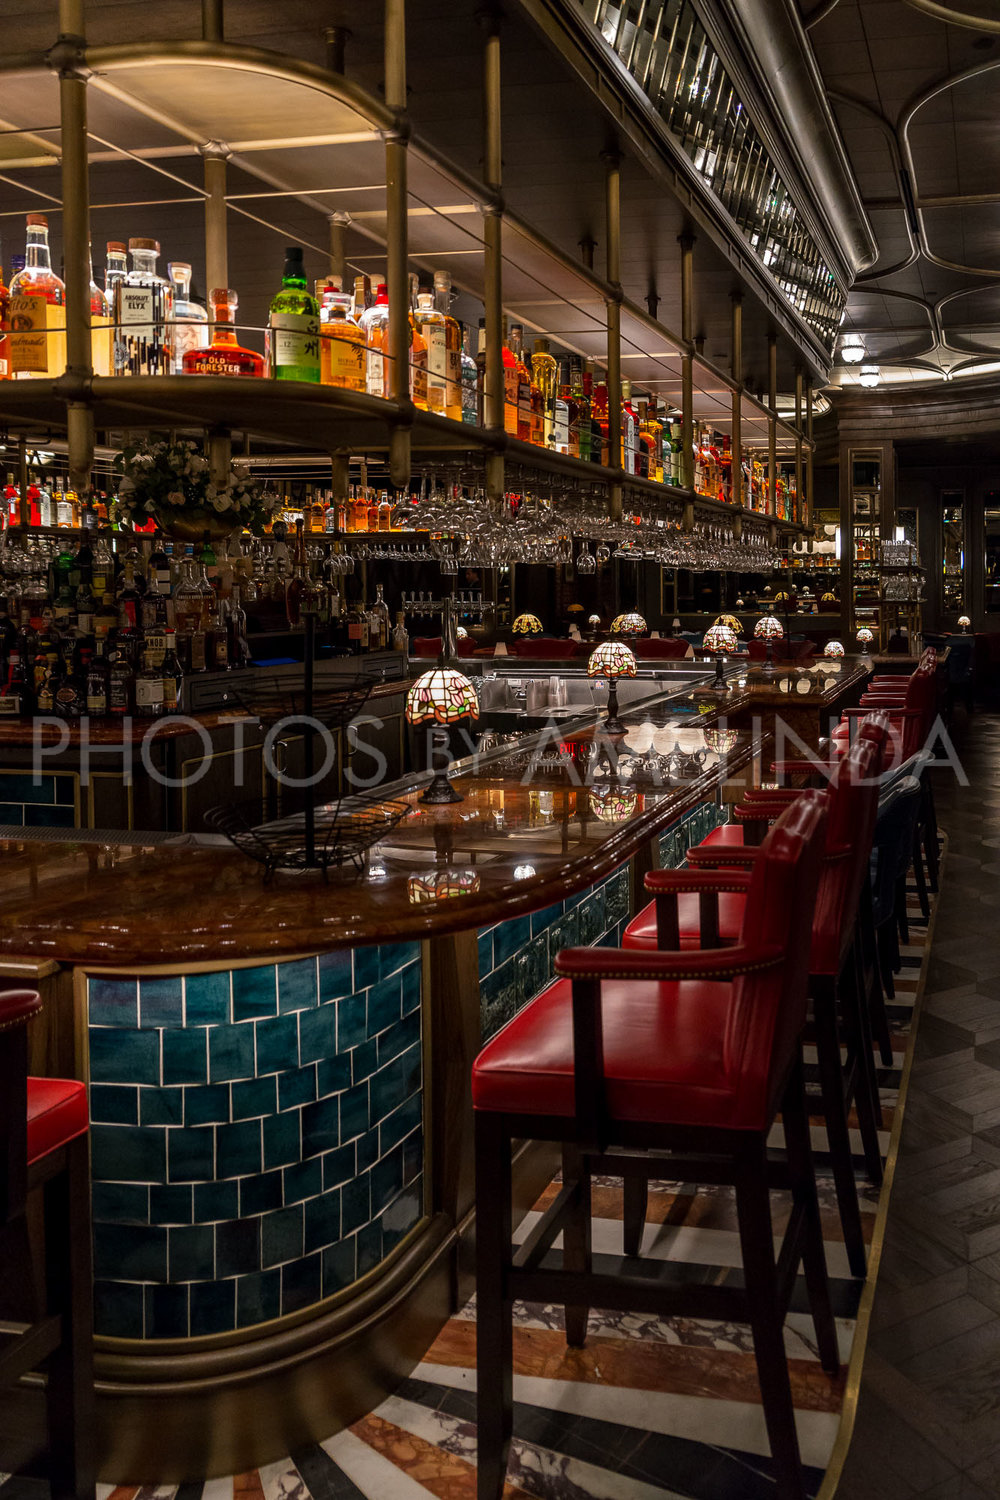 Bavette's Steakhouse & Bar